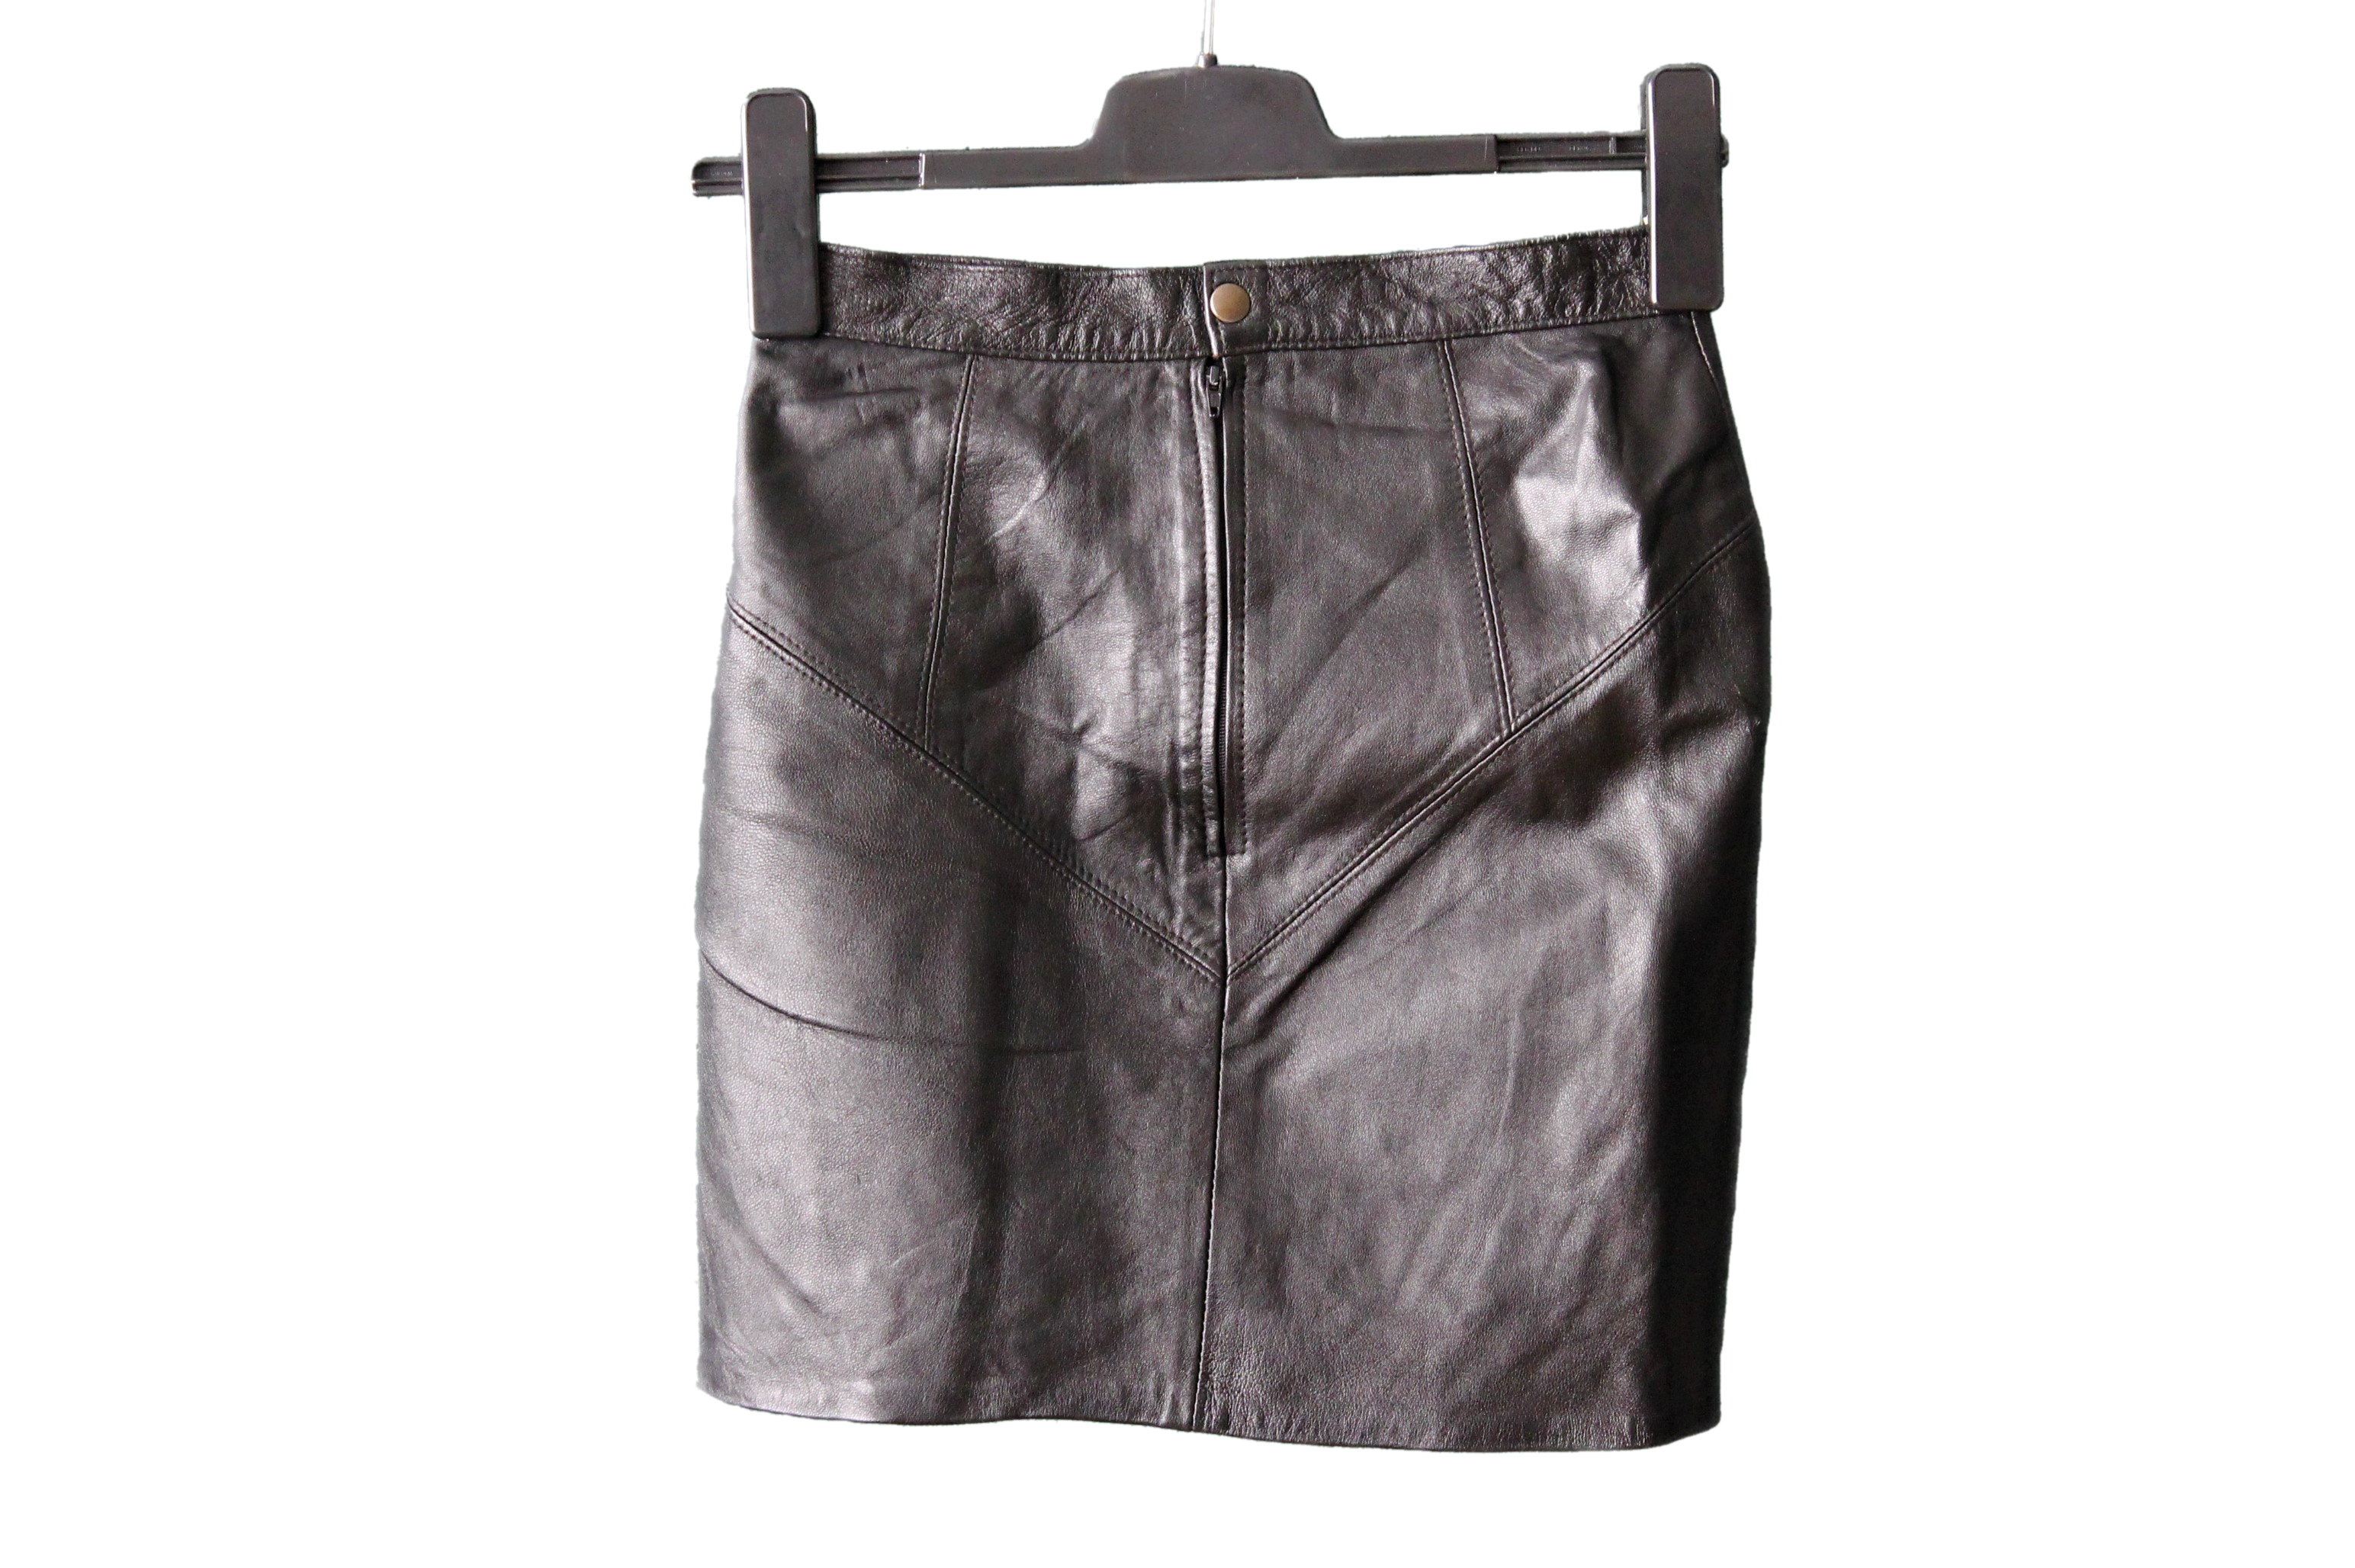 LEATHER2 size XS - S